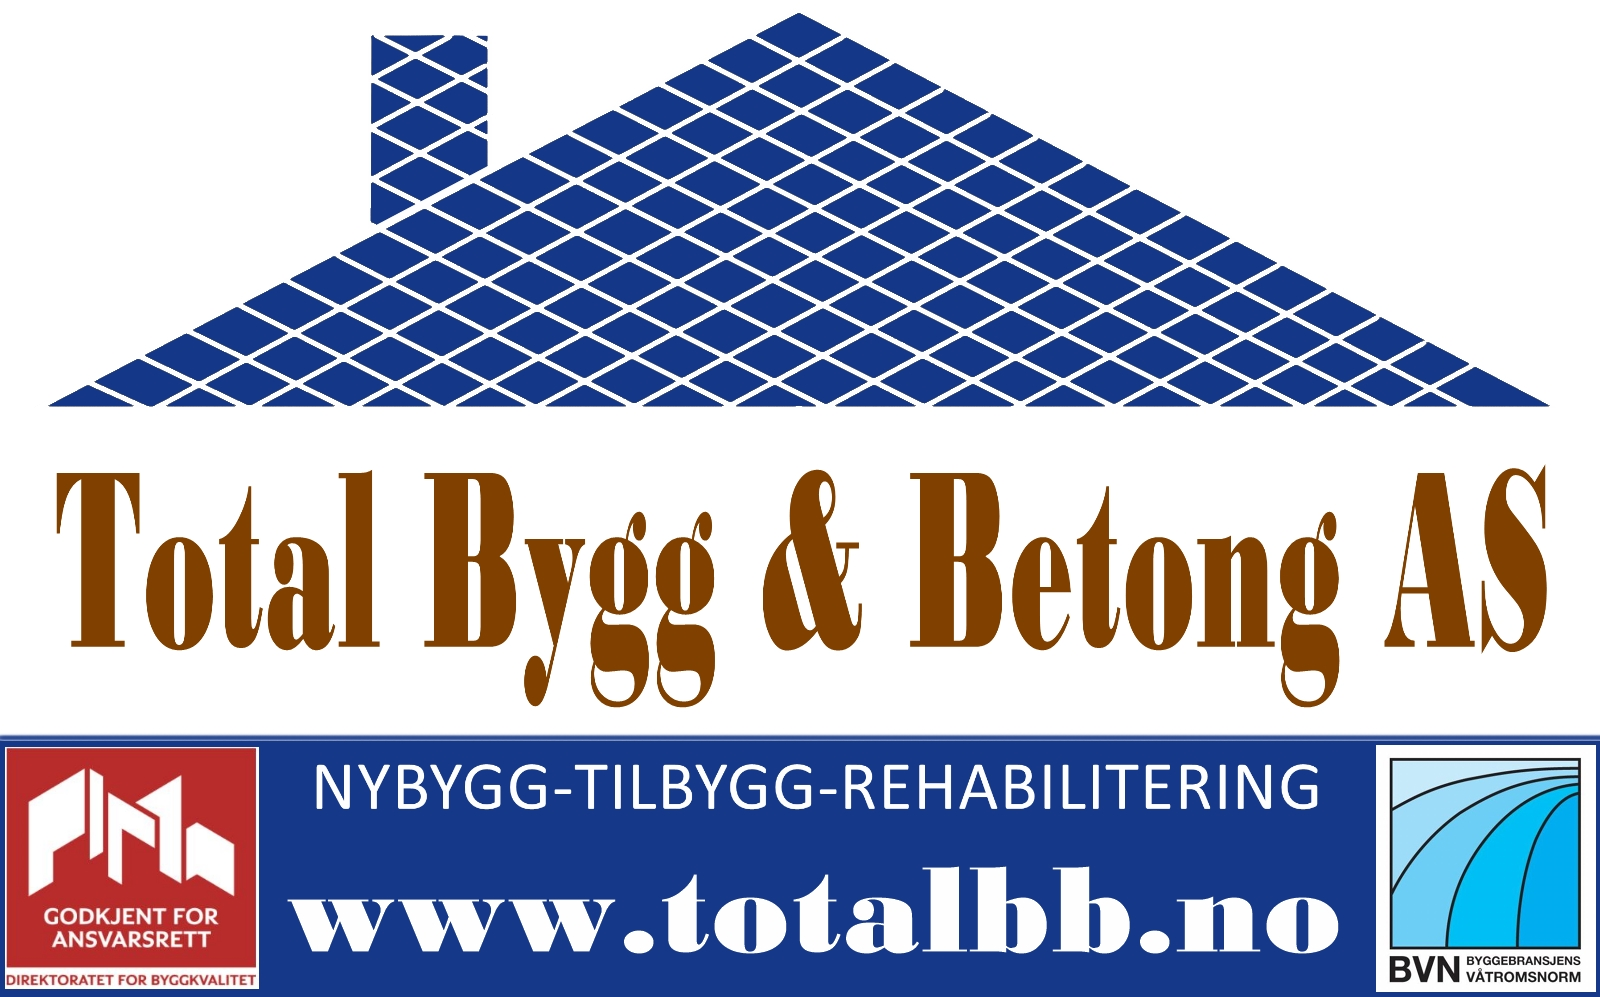 Total Bygg & Betong AS